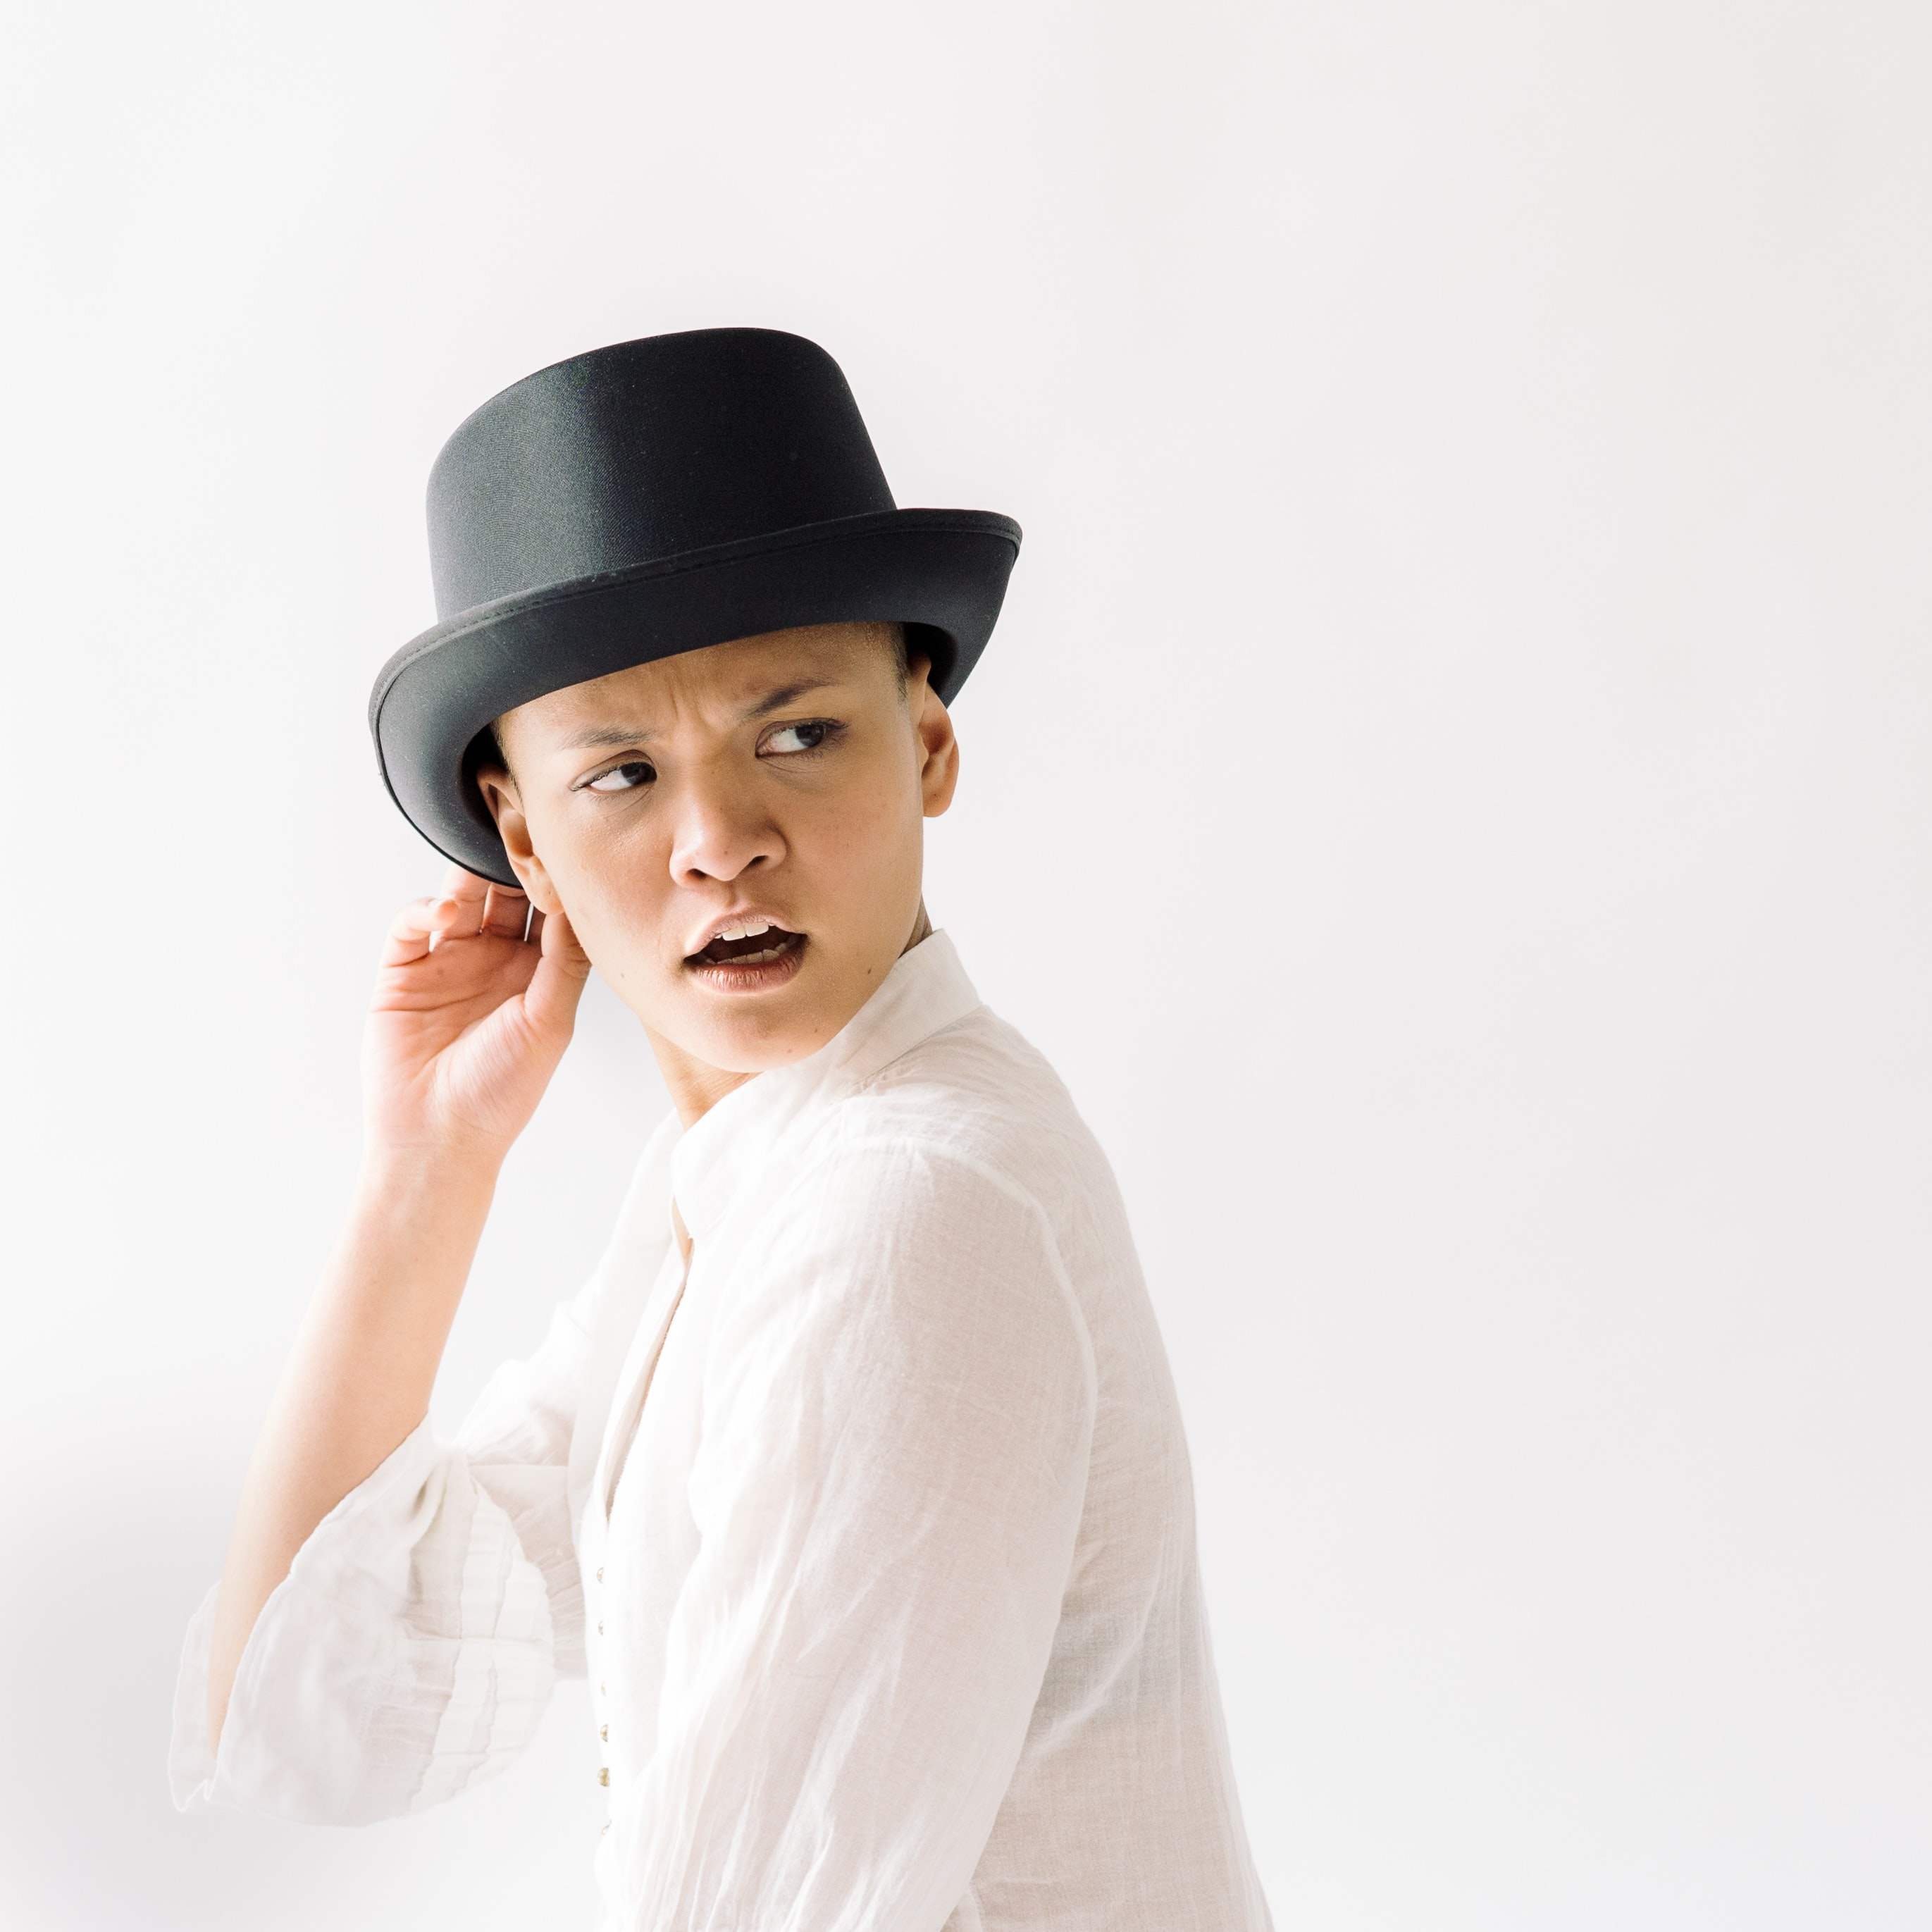 woman wearing top hat opening her mouth